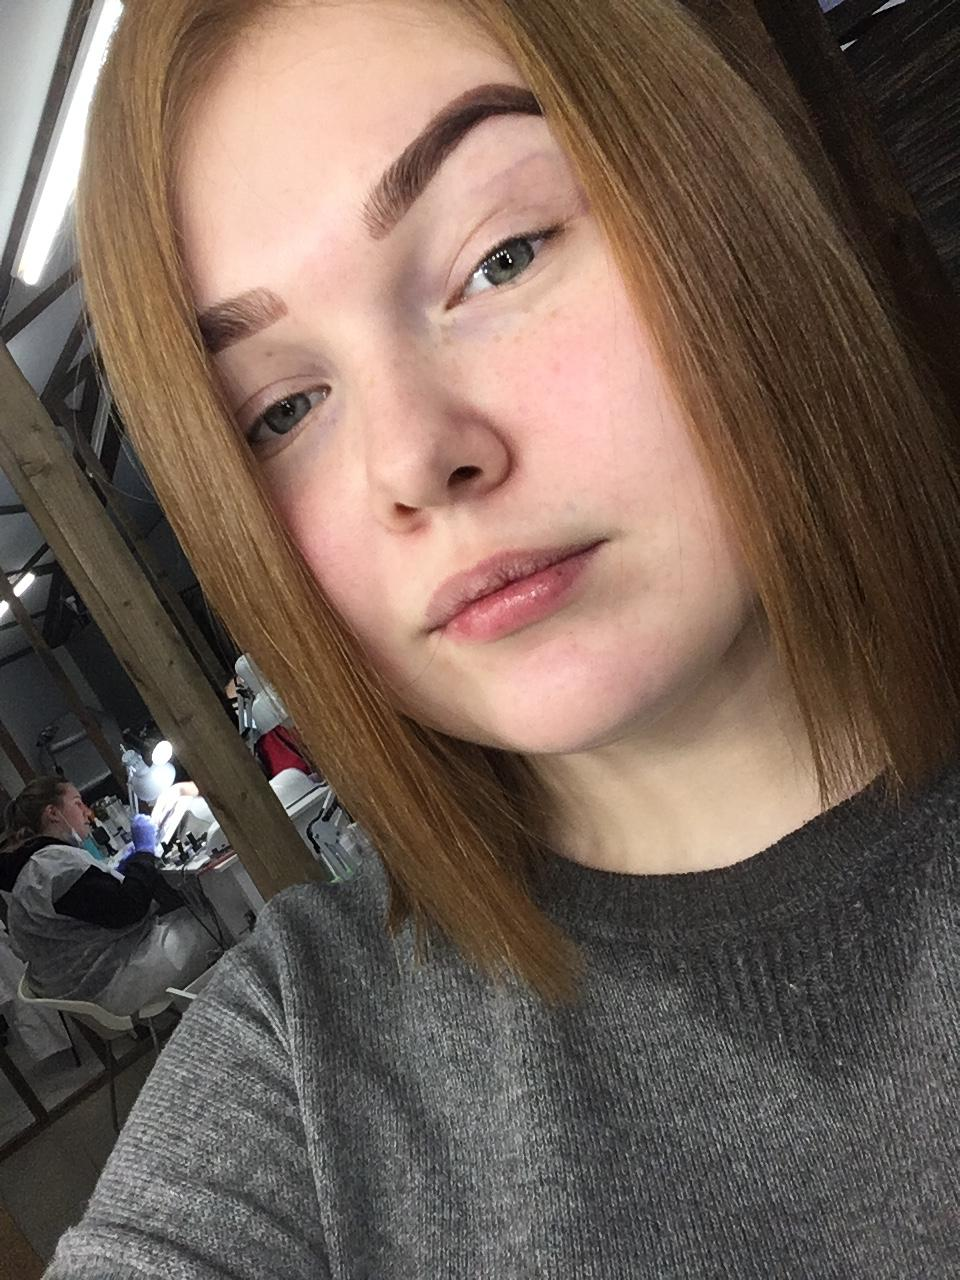 Picture with tags: Ginger, Interesting, Russia, Girl